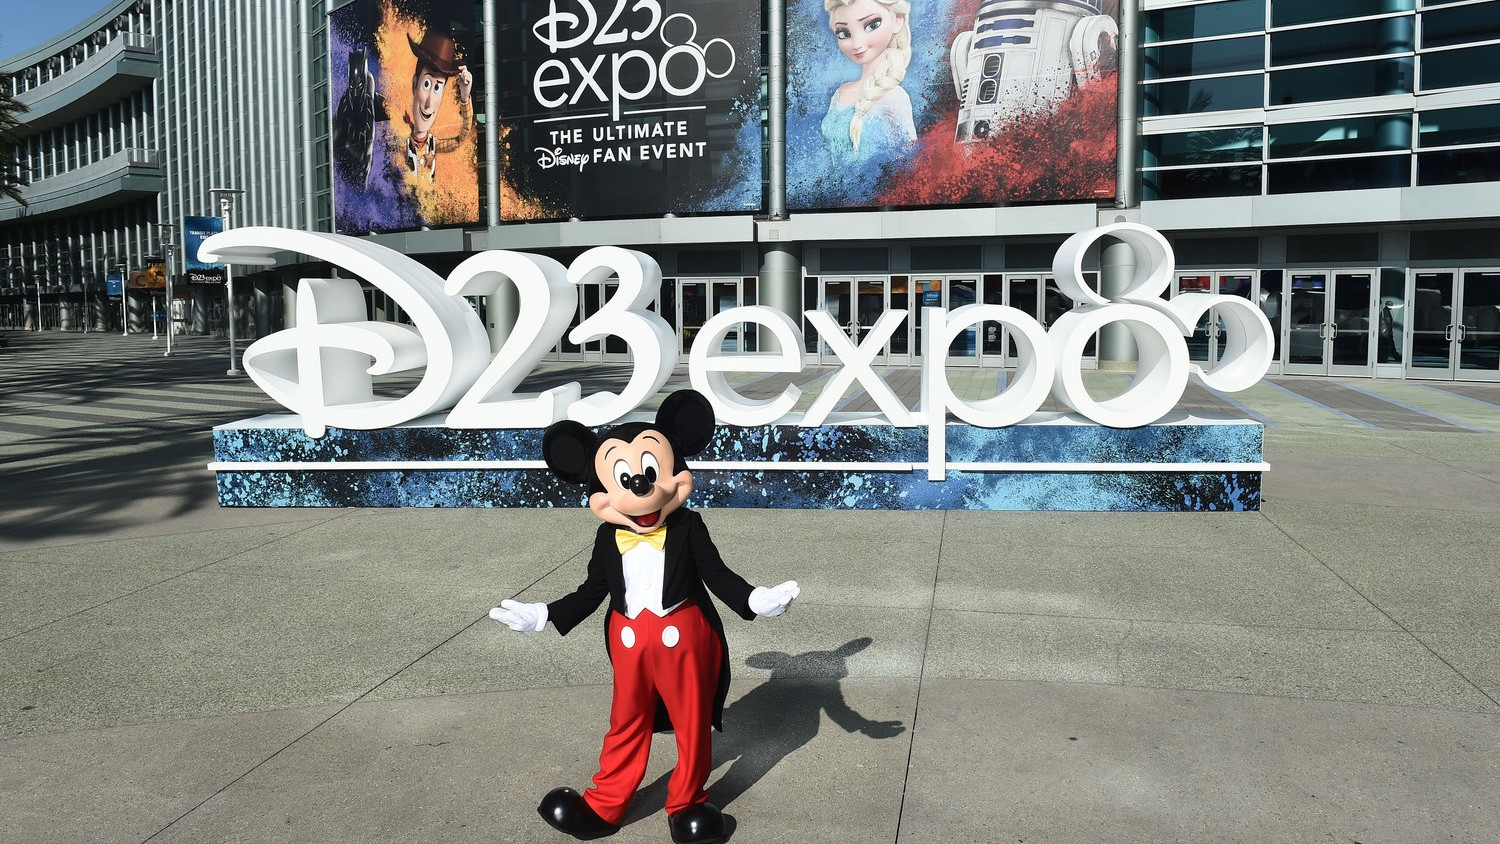 The 2019 D23 Expo.